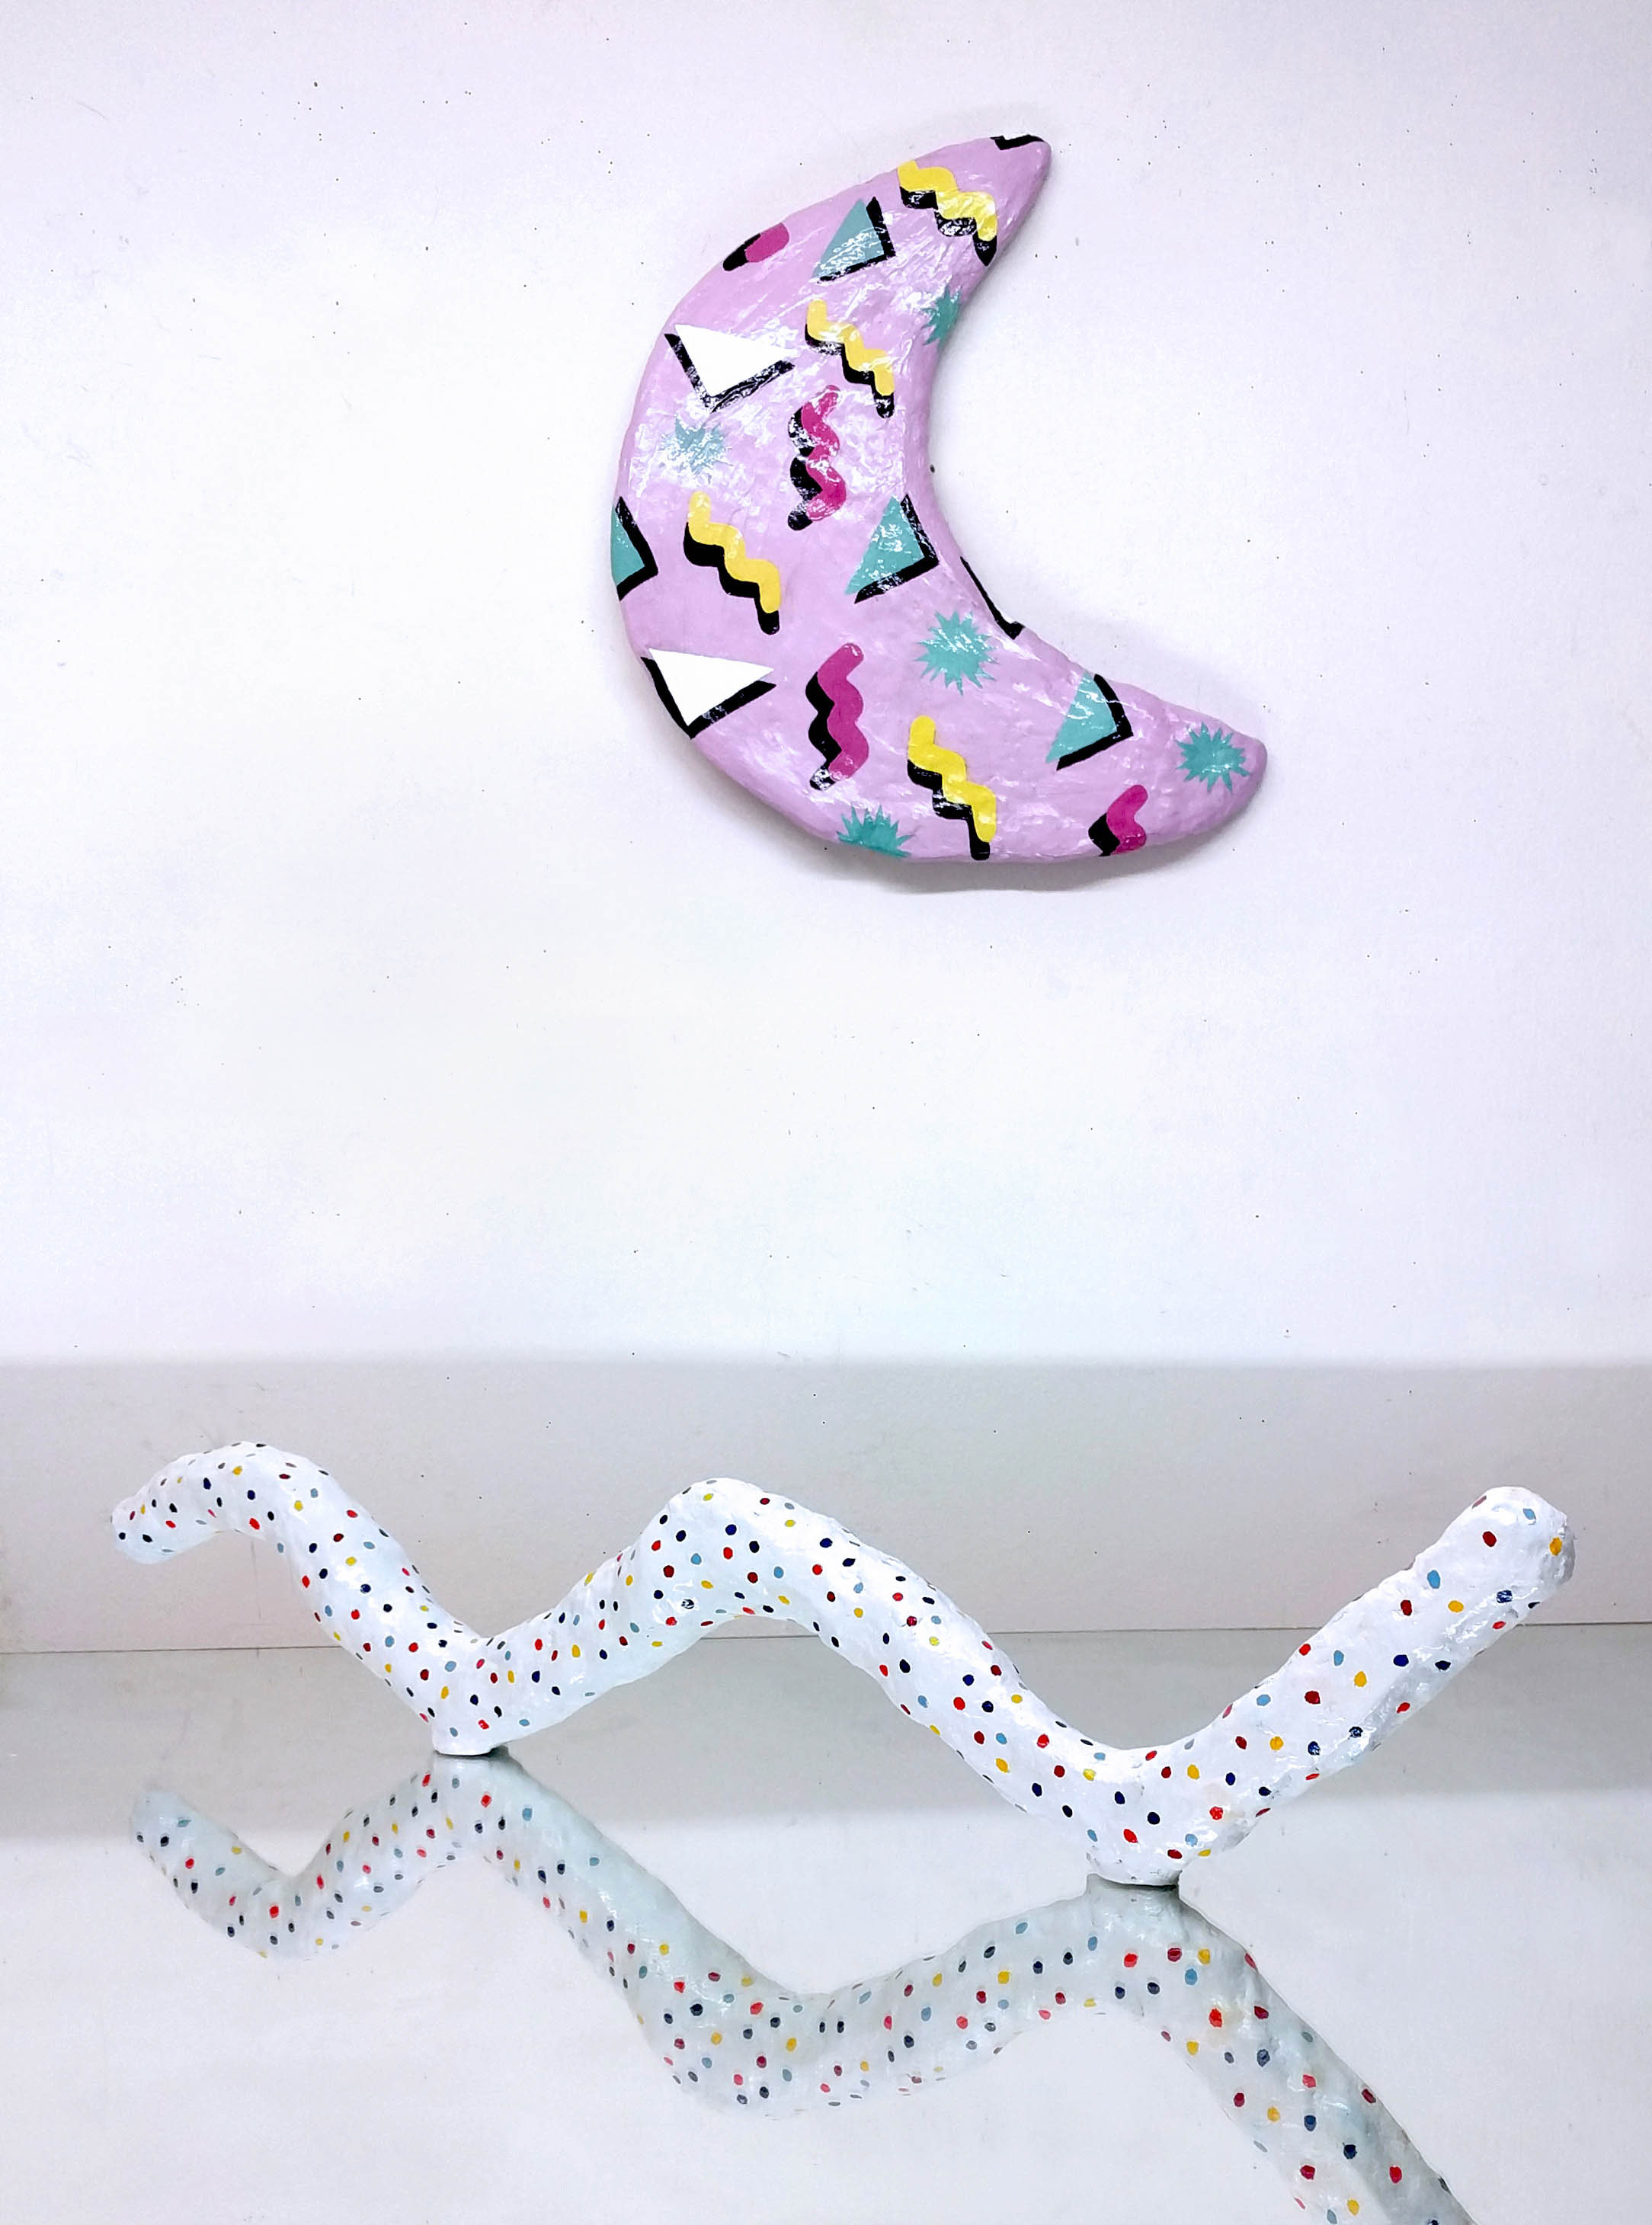 A pink 80s style hydrocal moon sculpture and a white, thin wormlike wavy hydrocal sculpture on a mirror